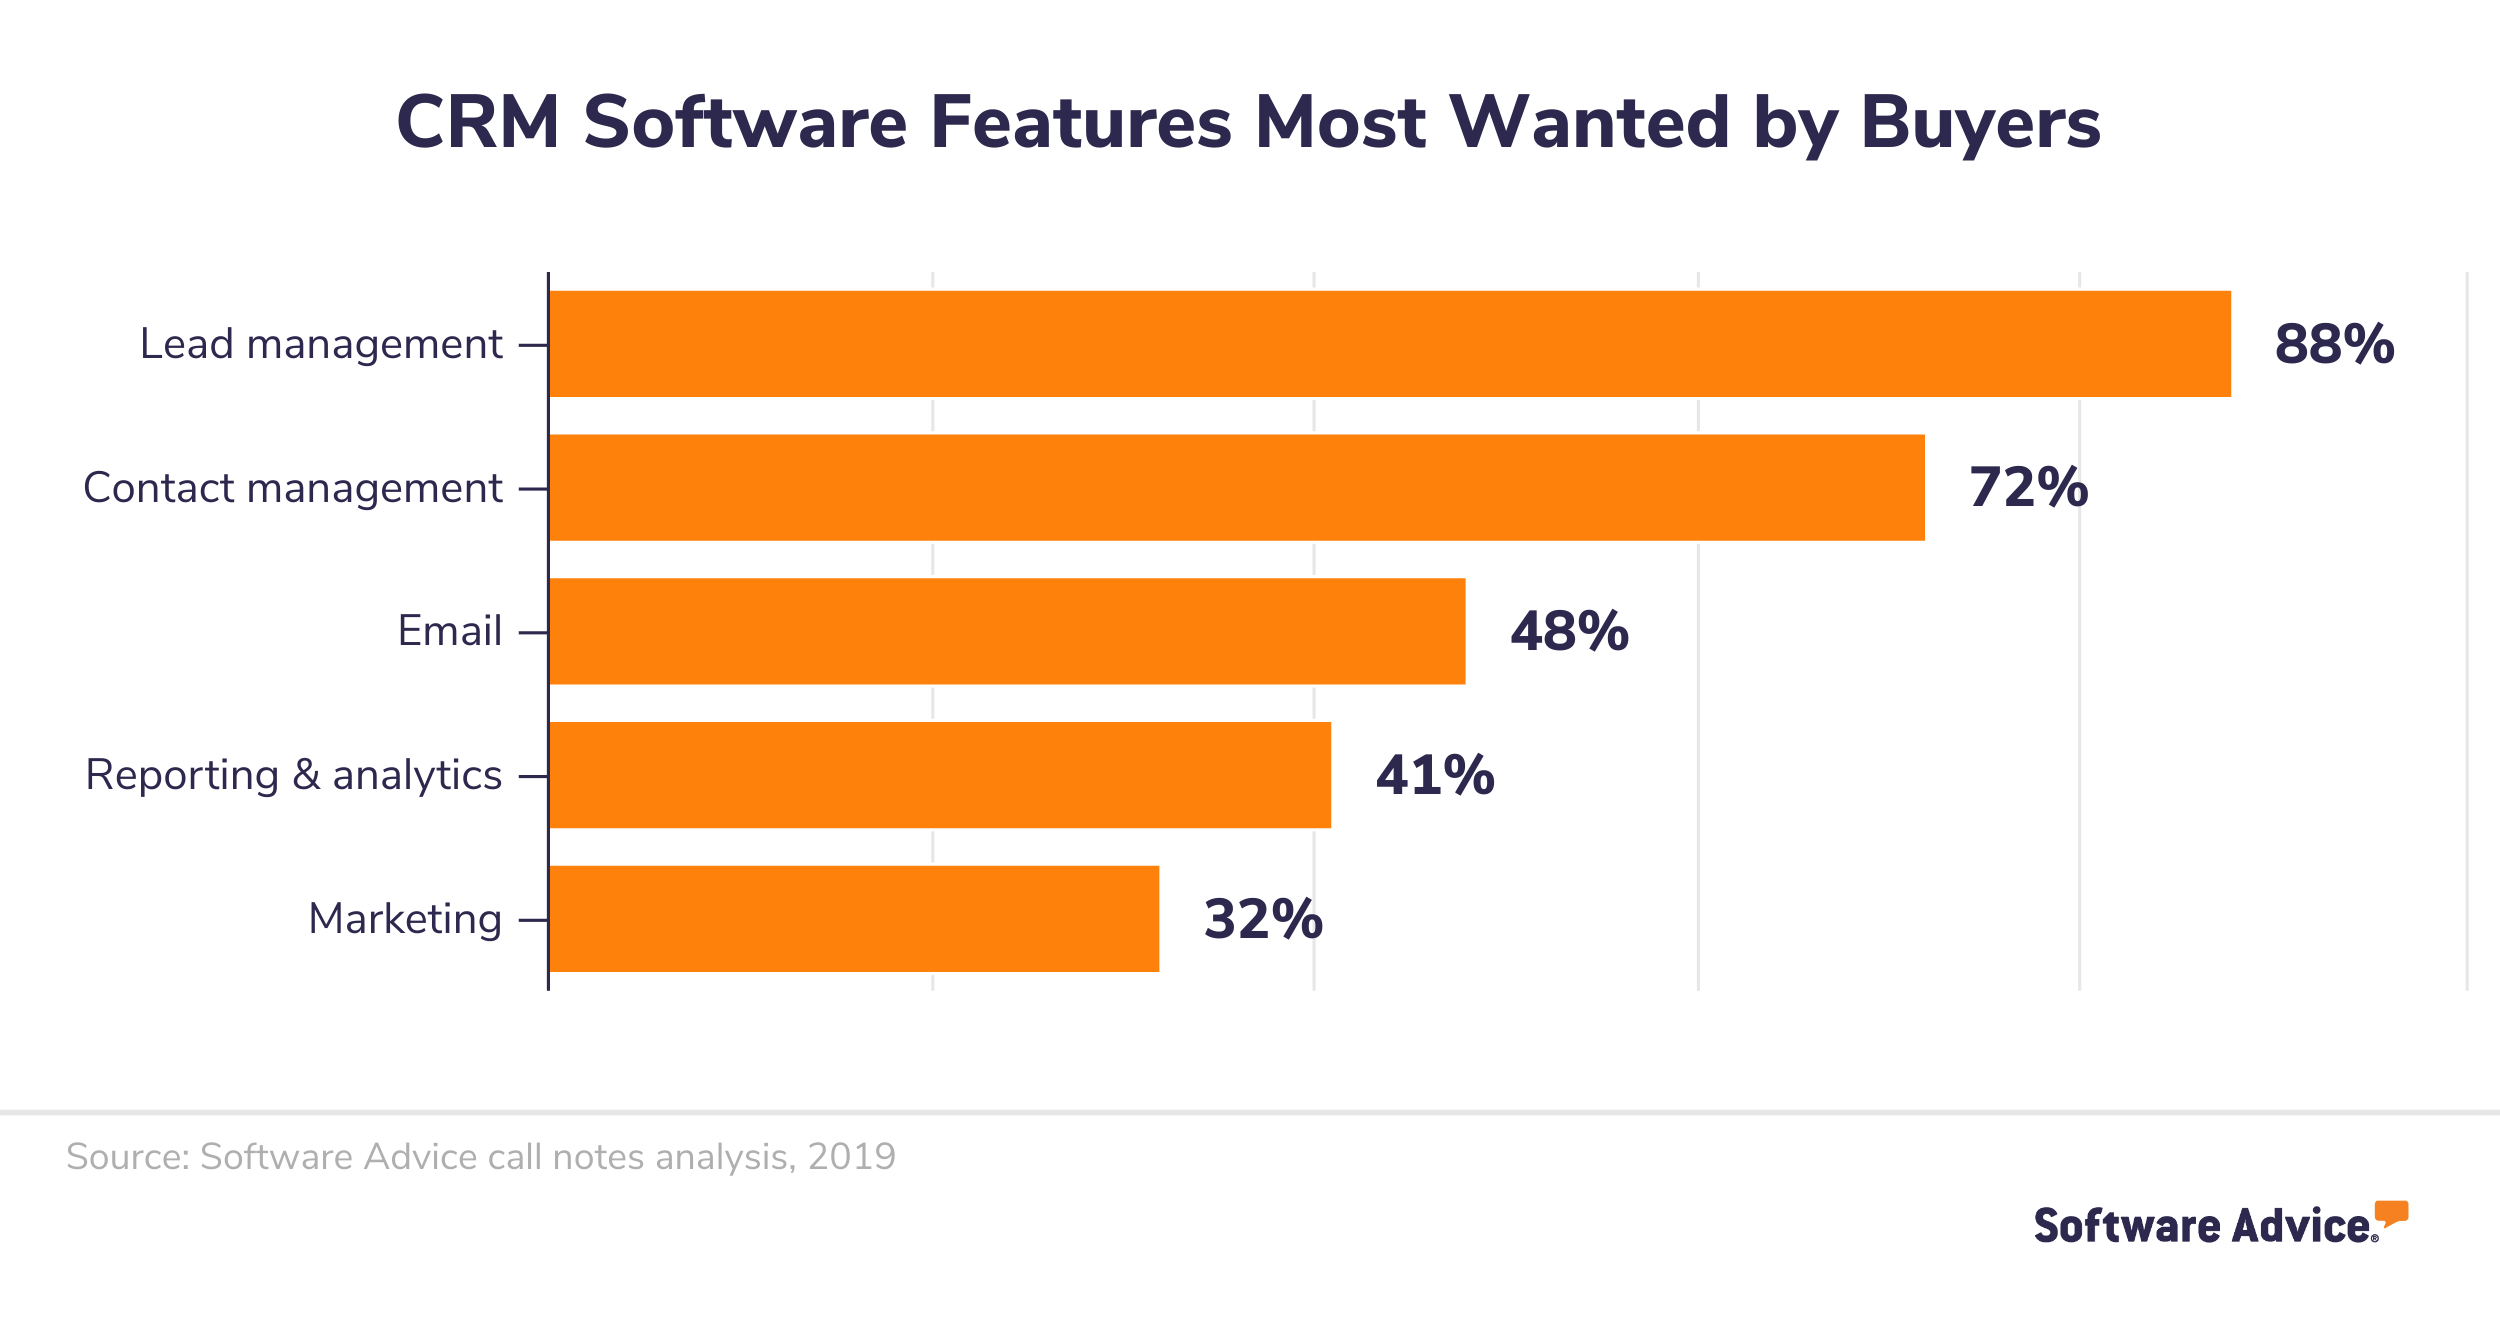 CRM features most wanted by buyers